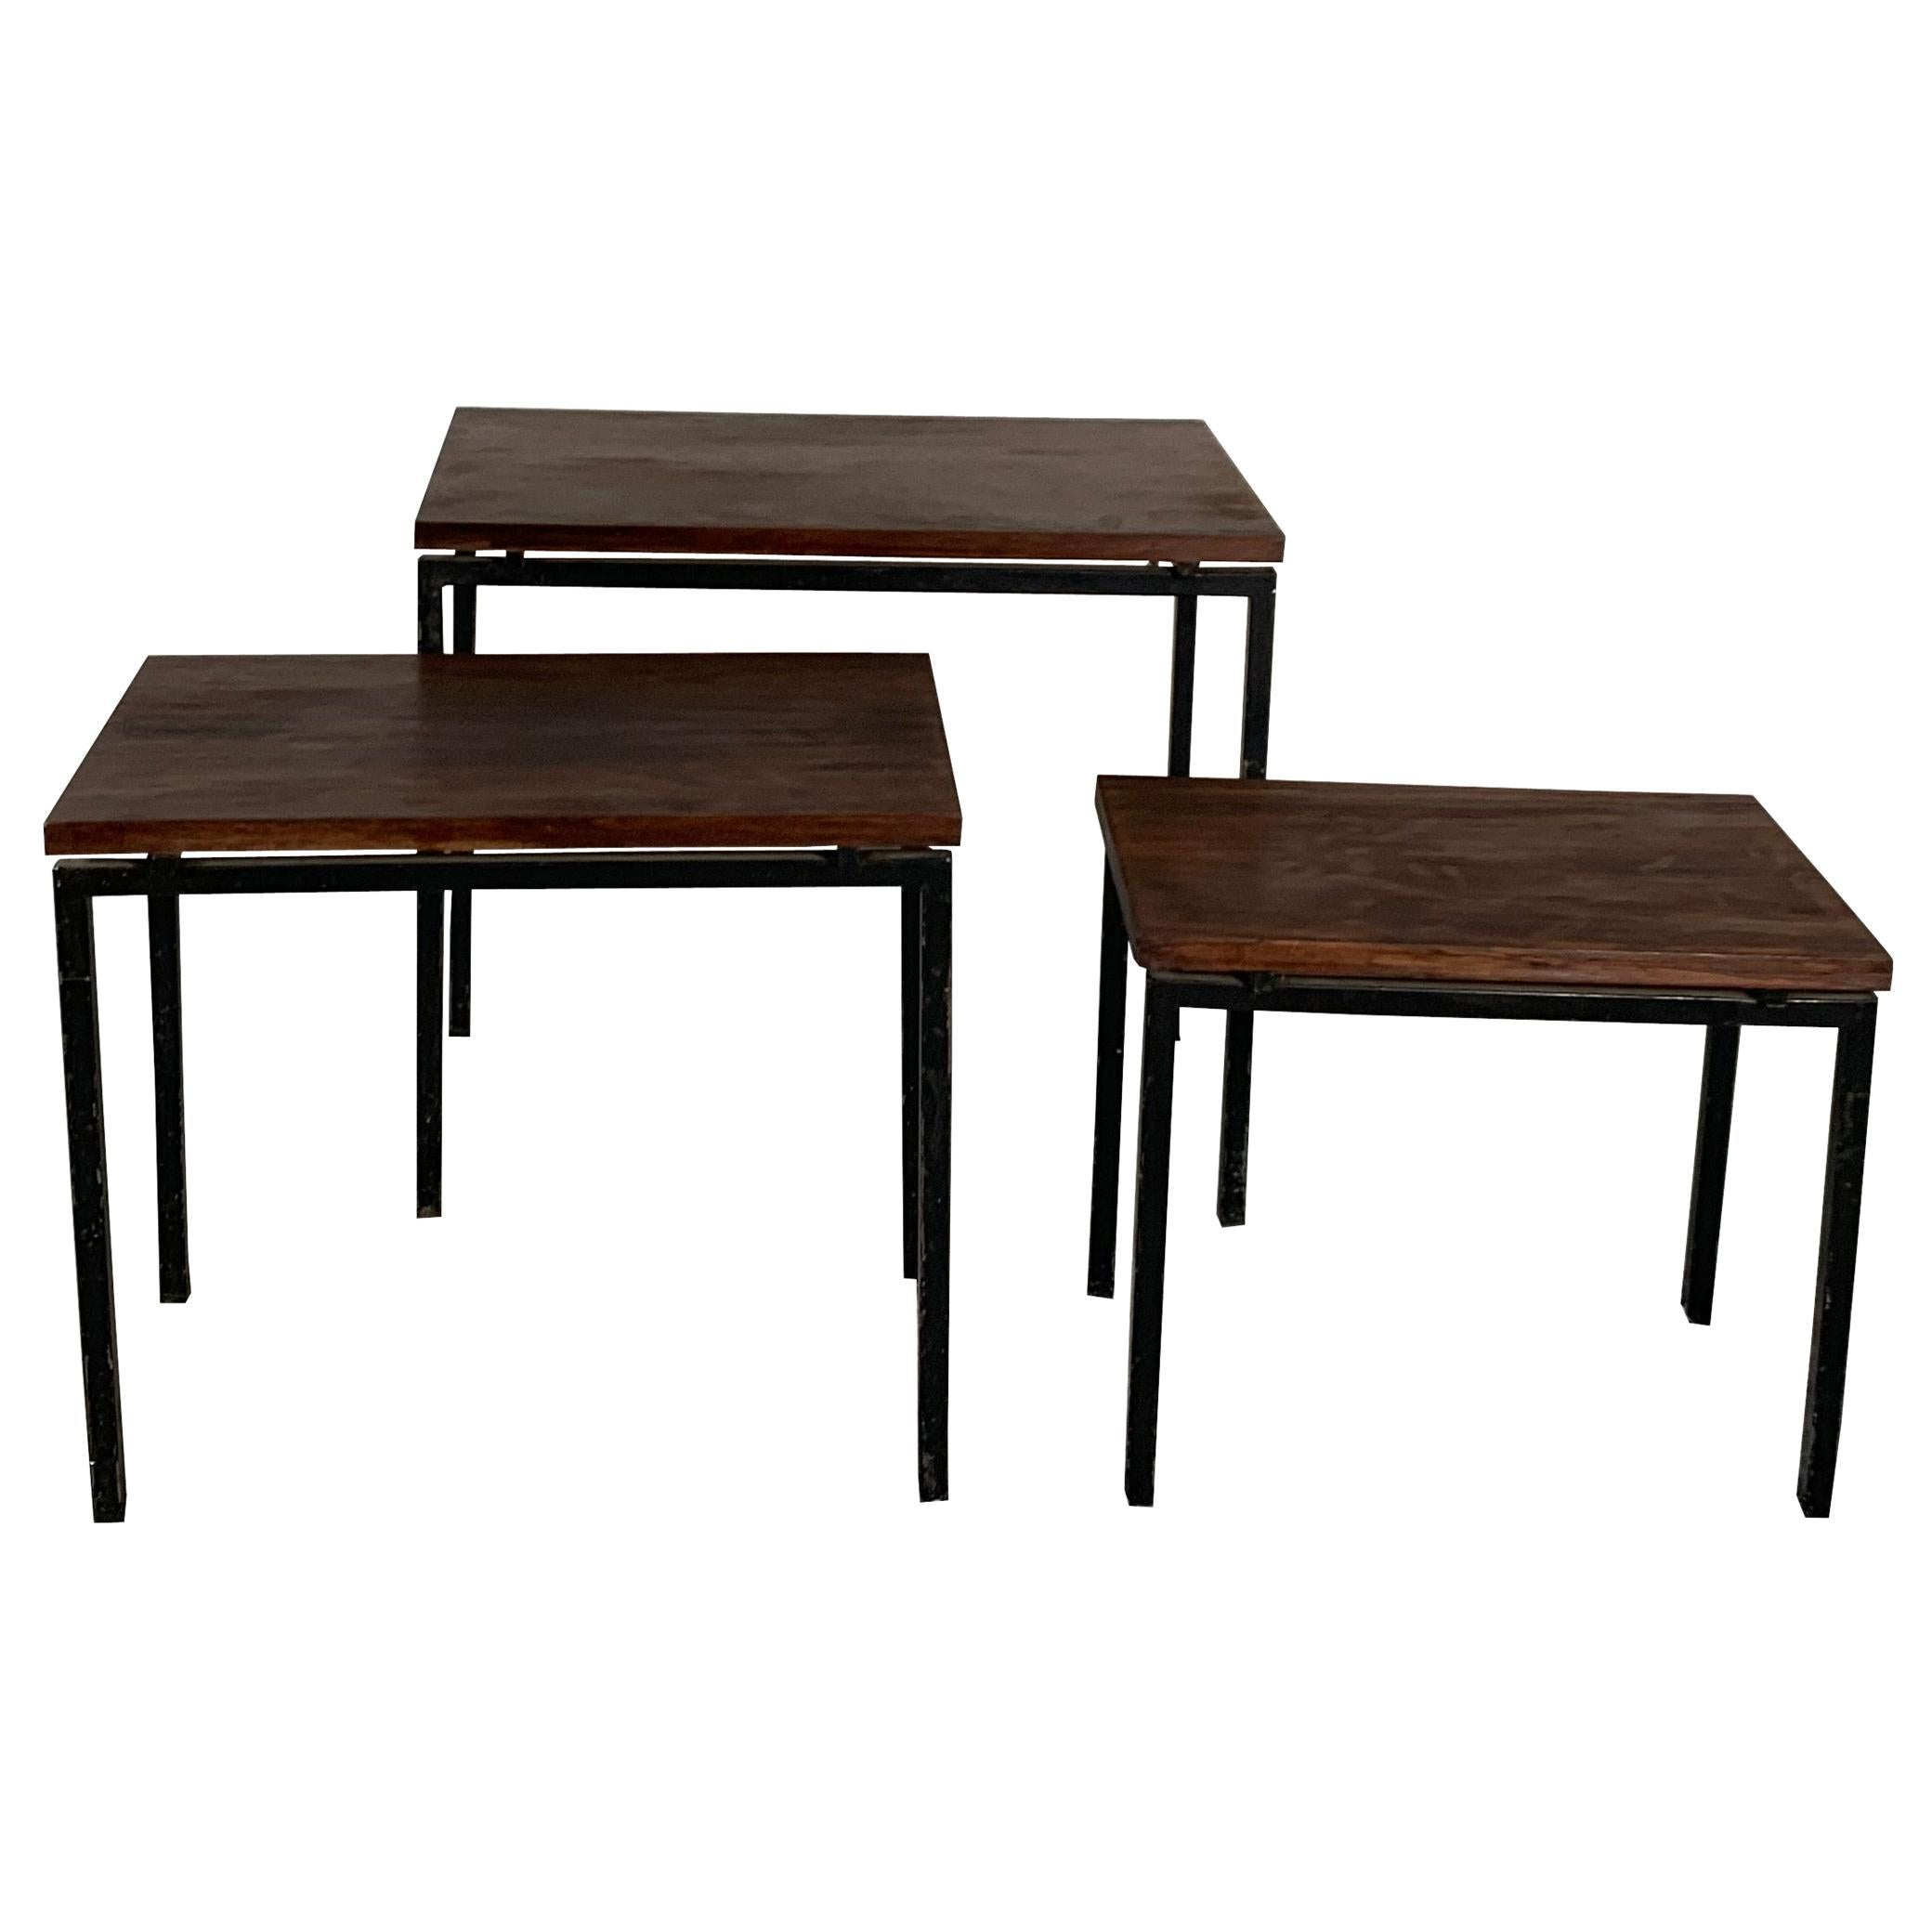 20th Century Set of 3 Nesting Tables by Cees Braakman, 1960's